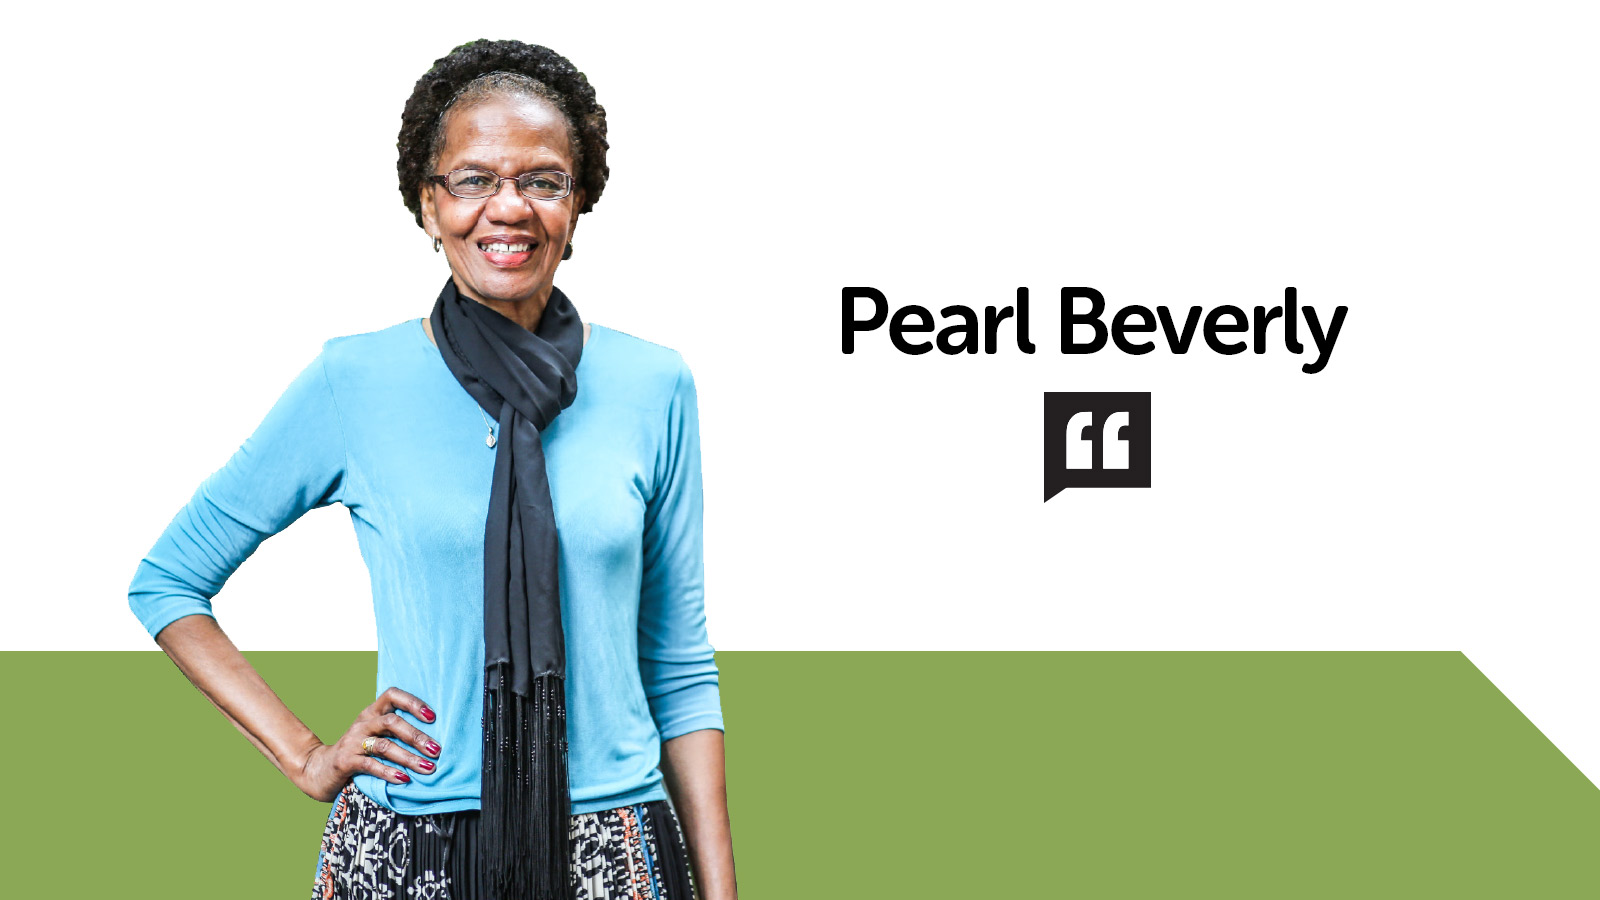 Pearl Beverly